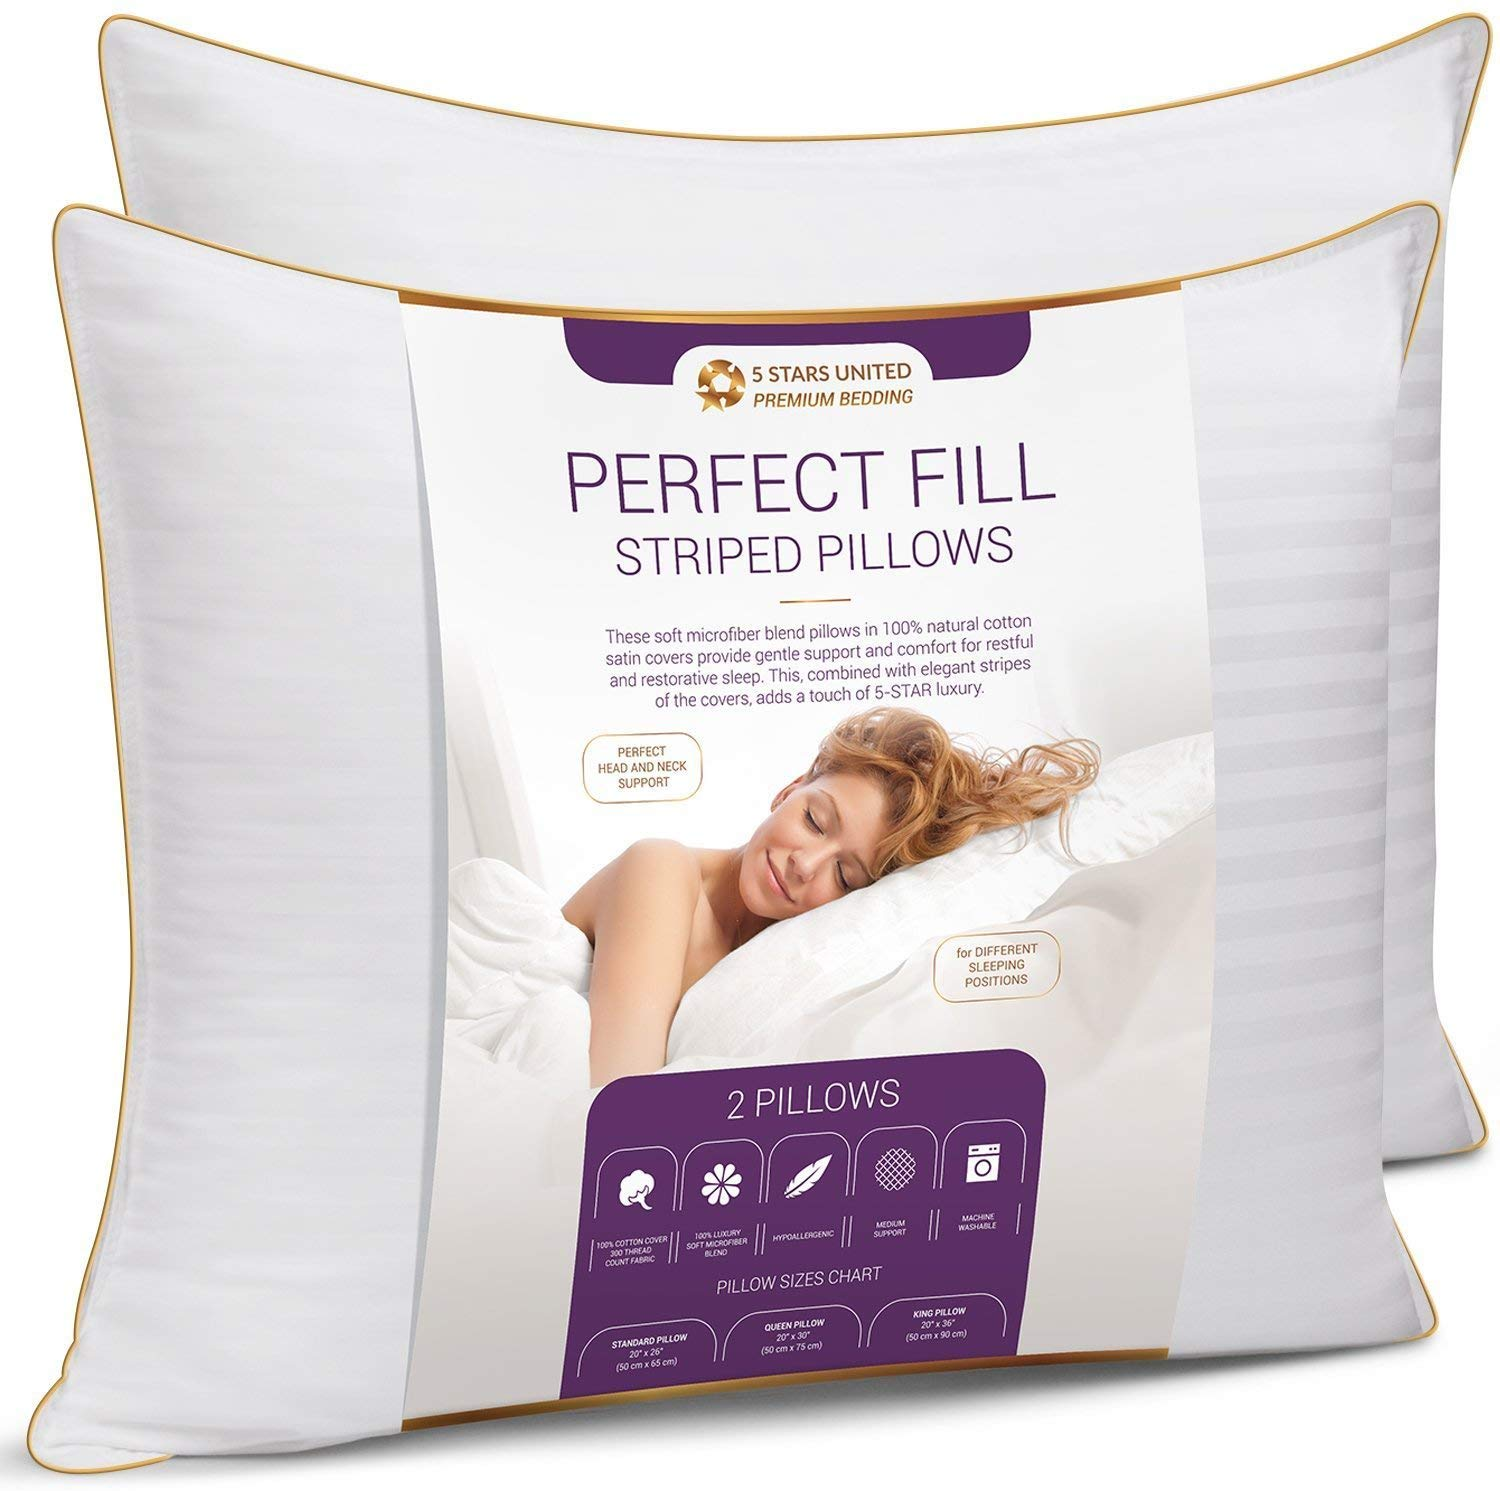 4. King Size Bed Pillows 20x36